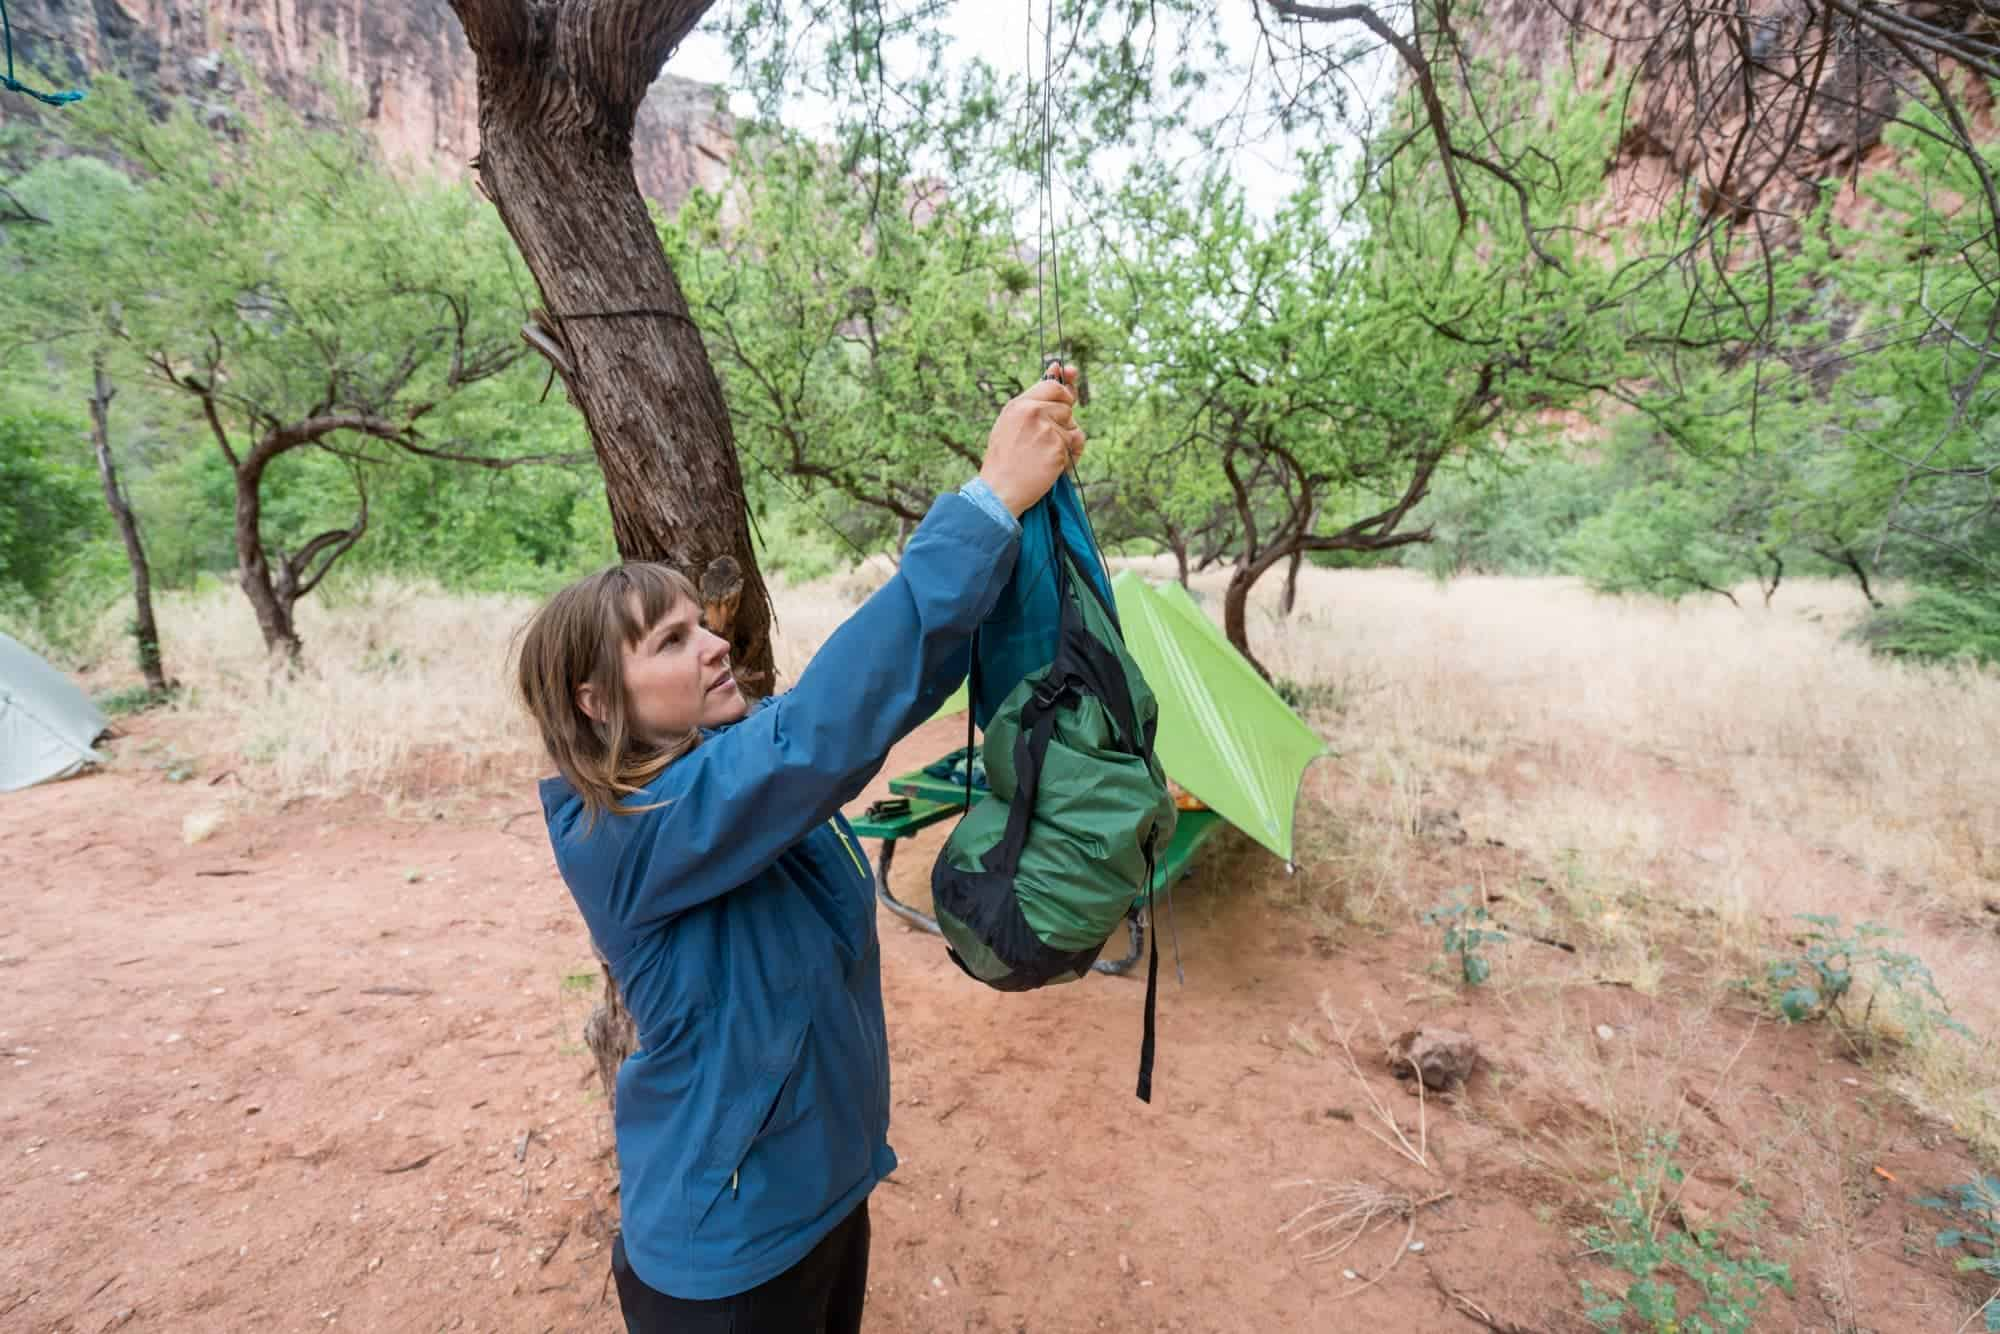 Get ready for your Havasu Falls backpacking trip! Check out our complete Havasu Falls packing list with all of the gear you need for a fun & comfortable adventure .